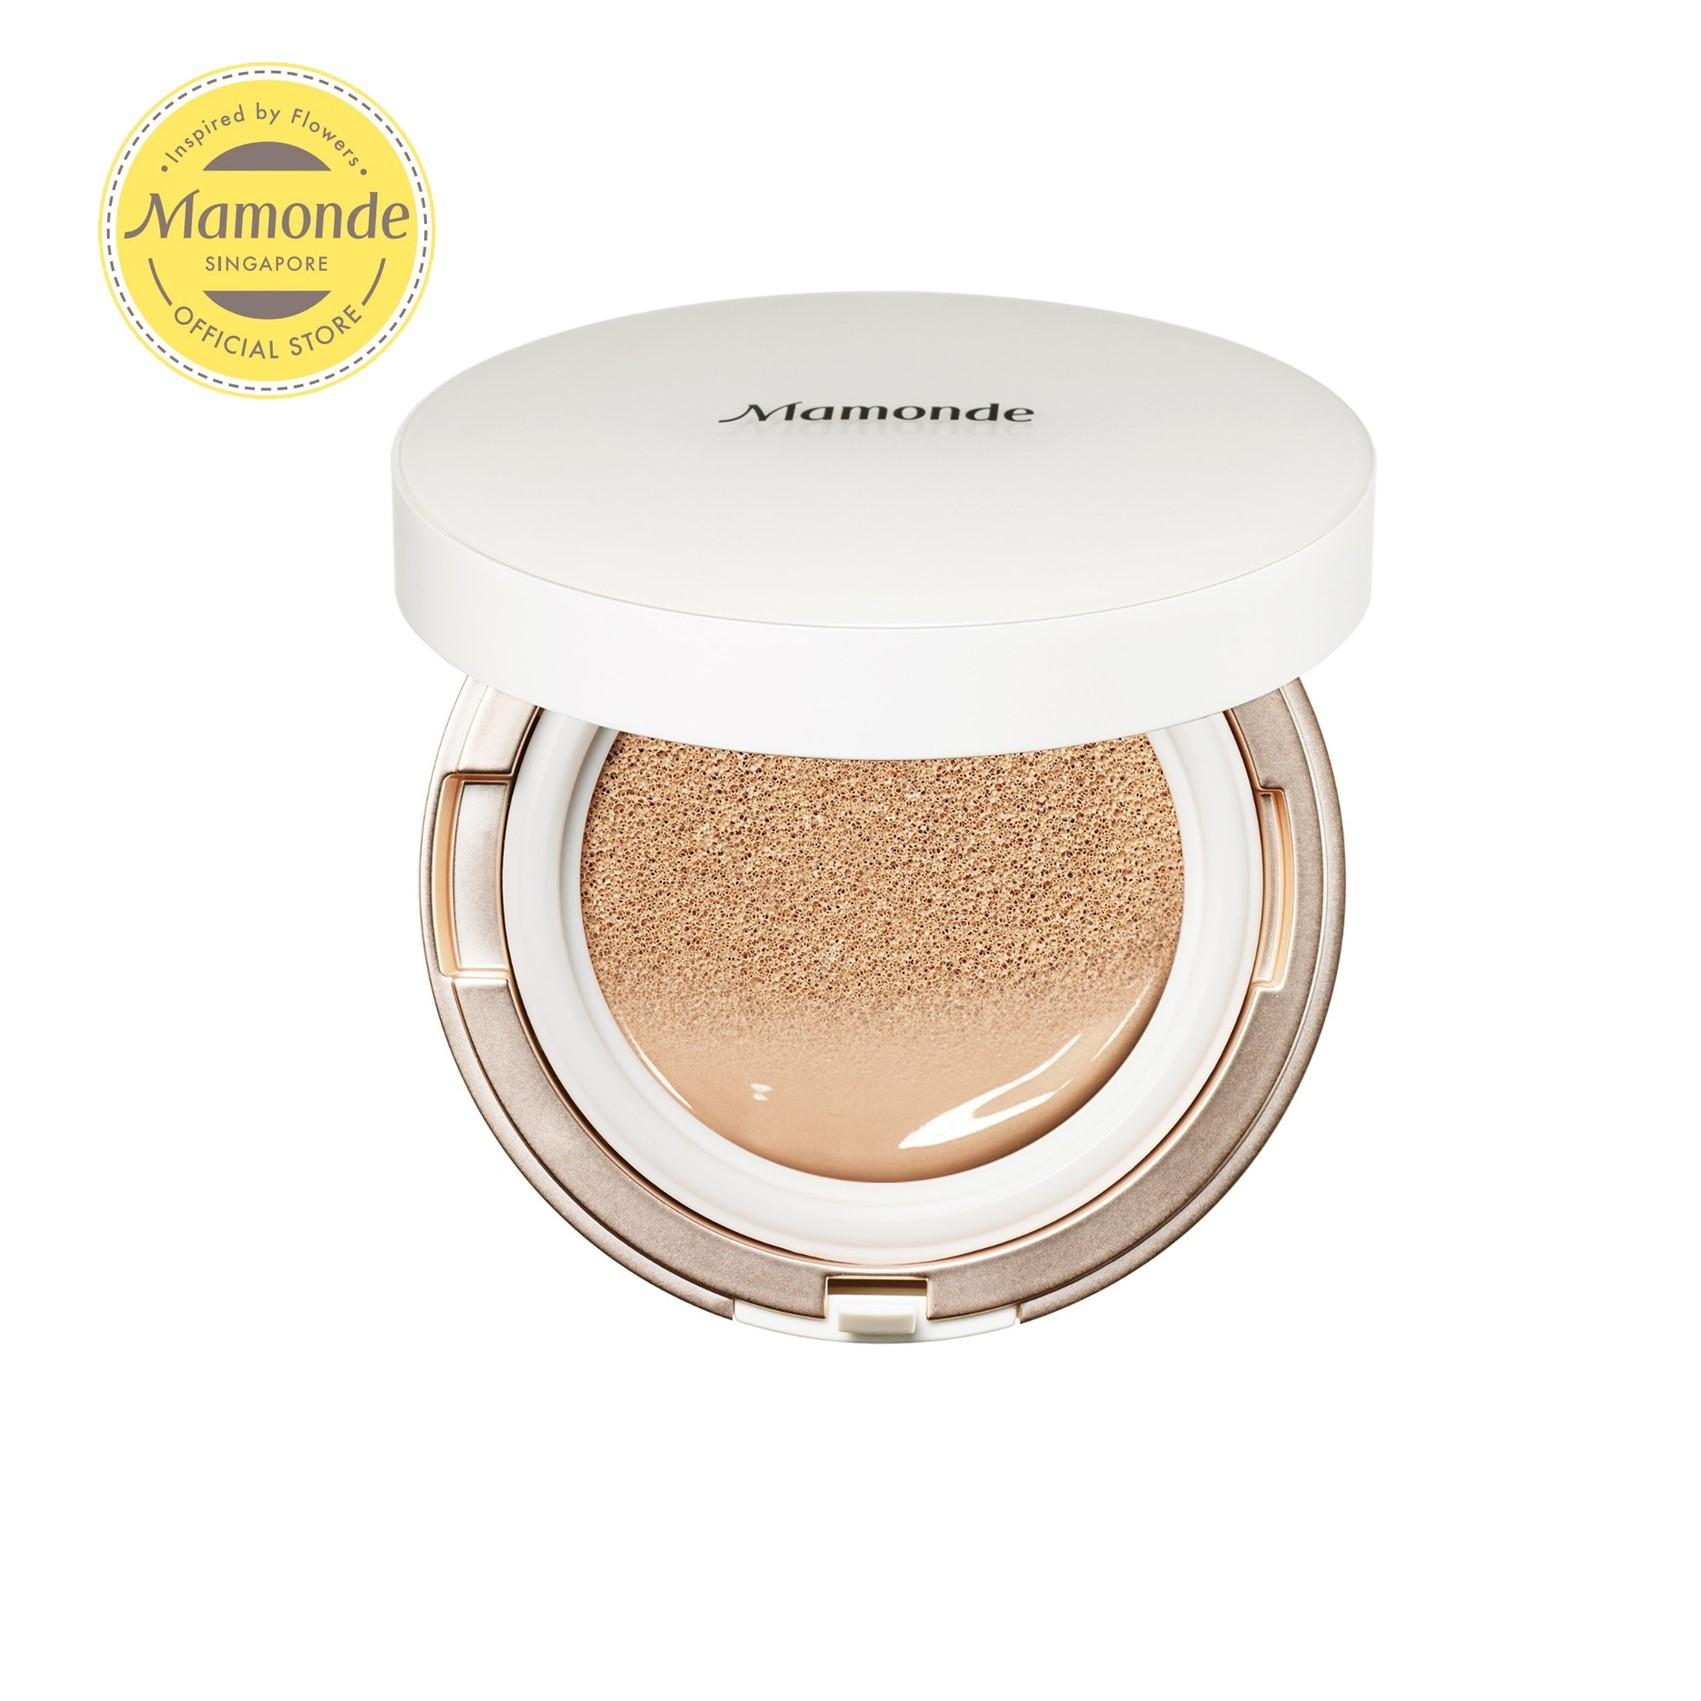 Mamonde Brightening Cover Powder Cushion [4 Shades Available] 15g By Mamonde (capitaland Merchant).